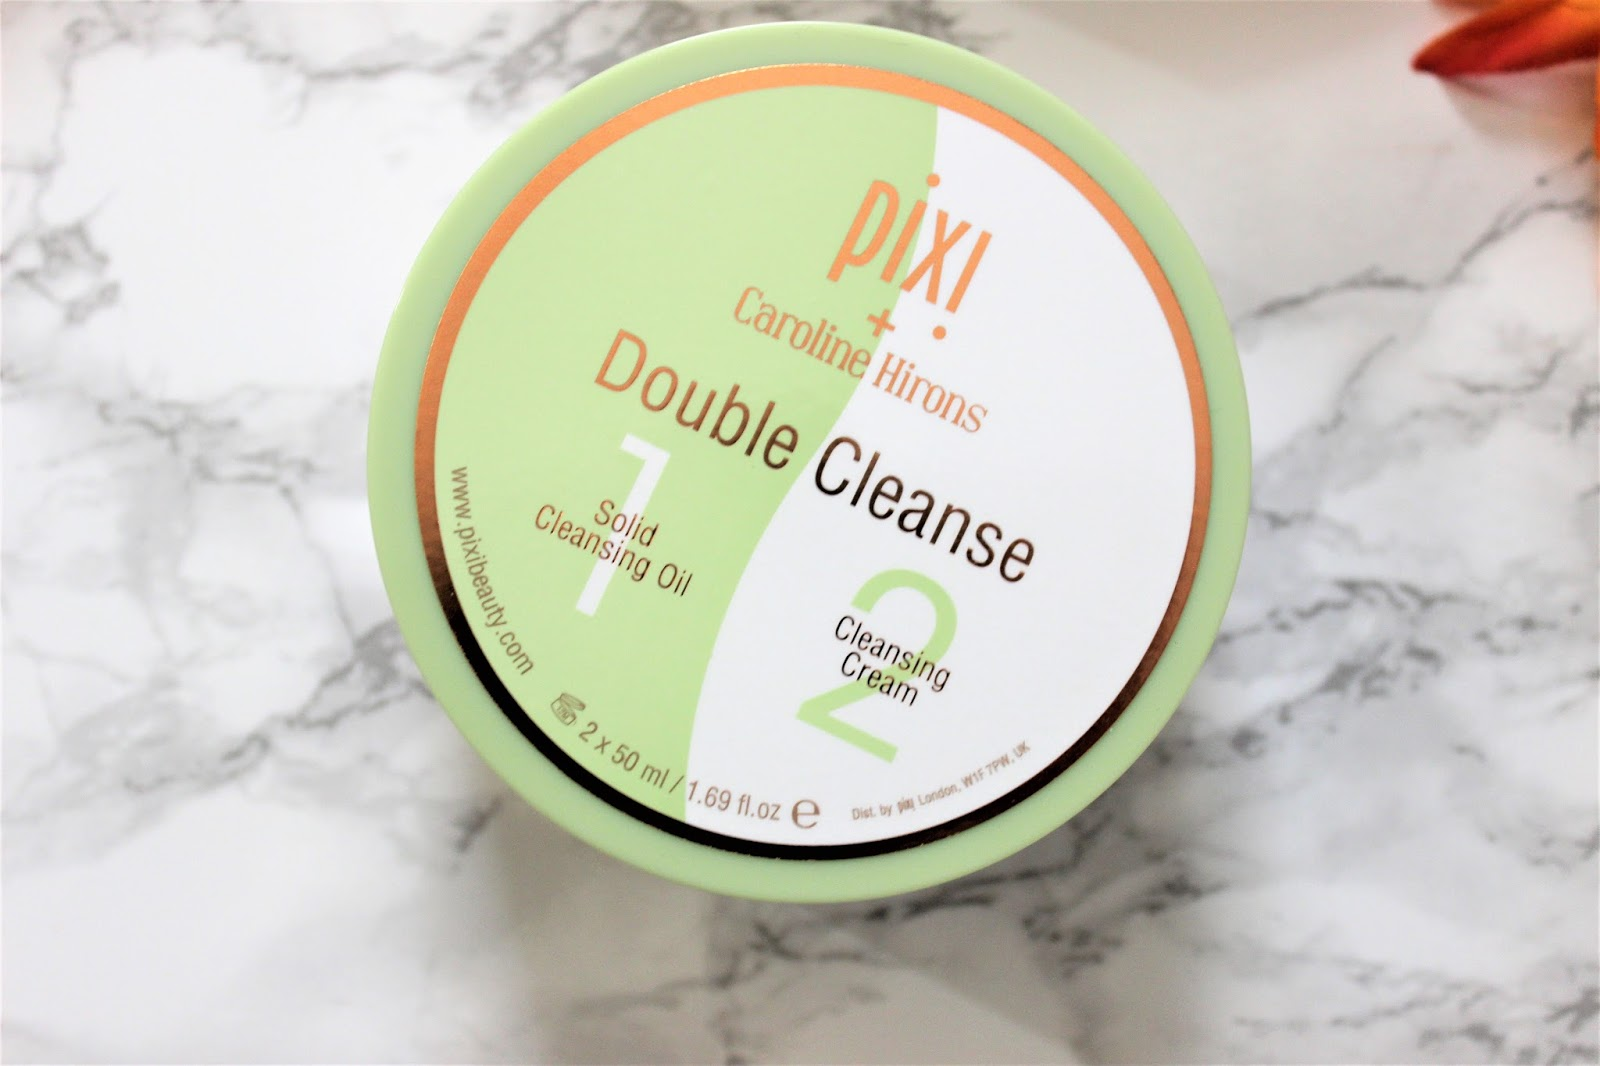 Pixi Double Cleanse Makeup Remover